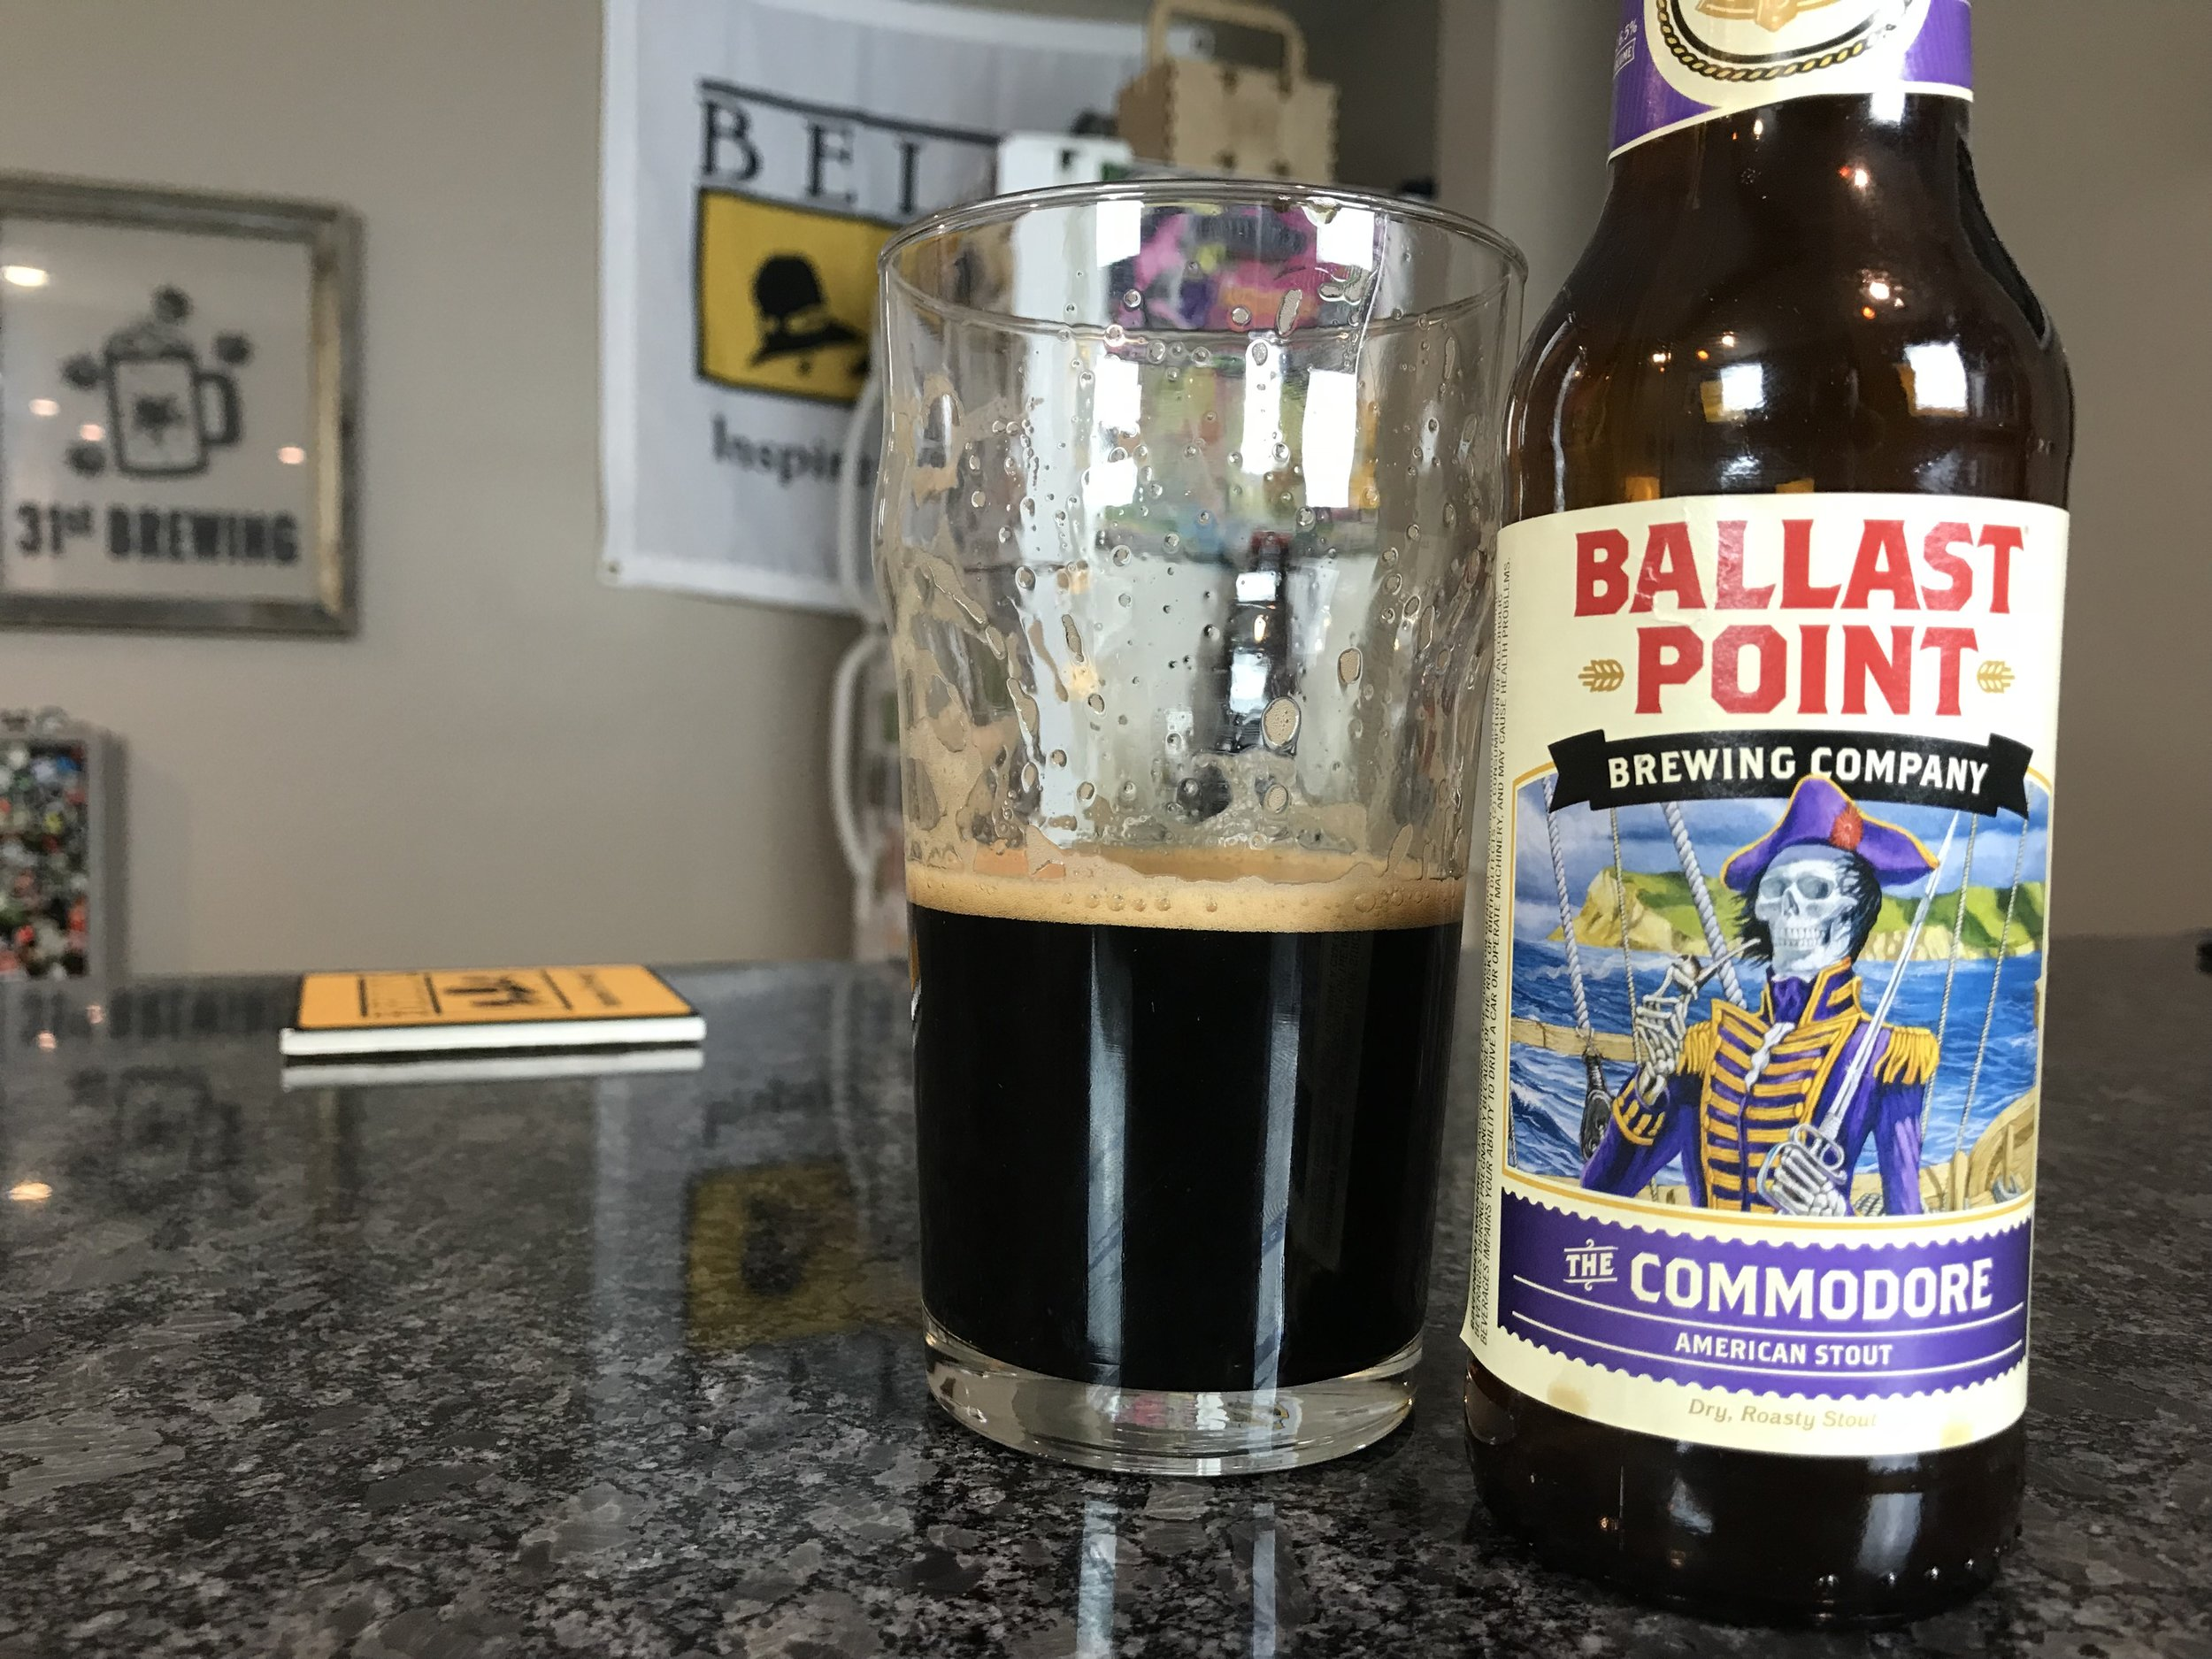 THE COMMODORE 6.5% ABV 62 IBUS - Want to see the Video review? Click on the image.